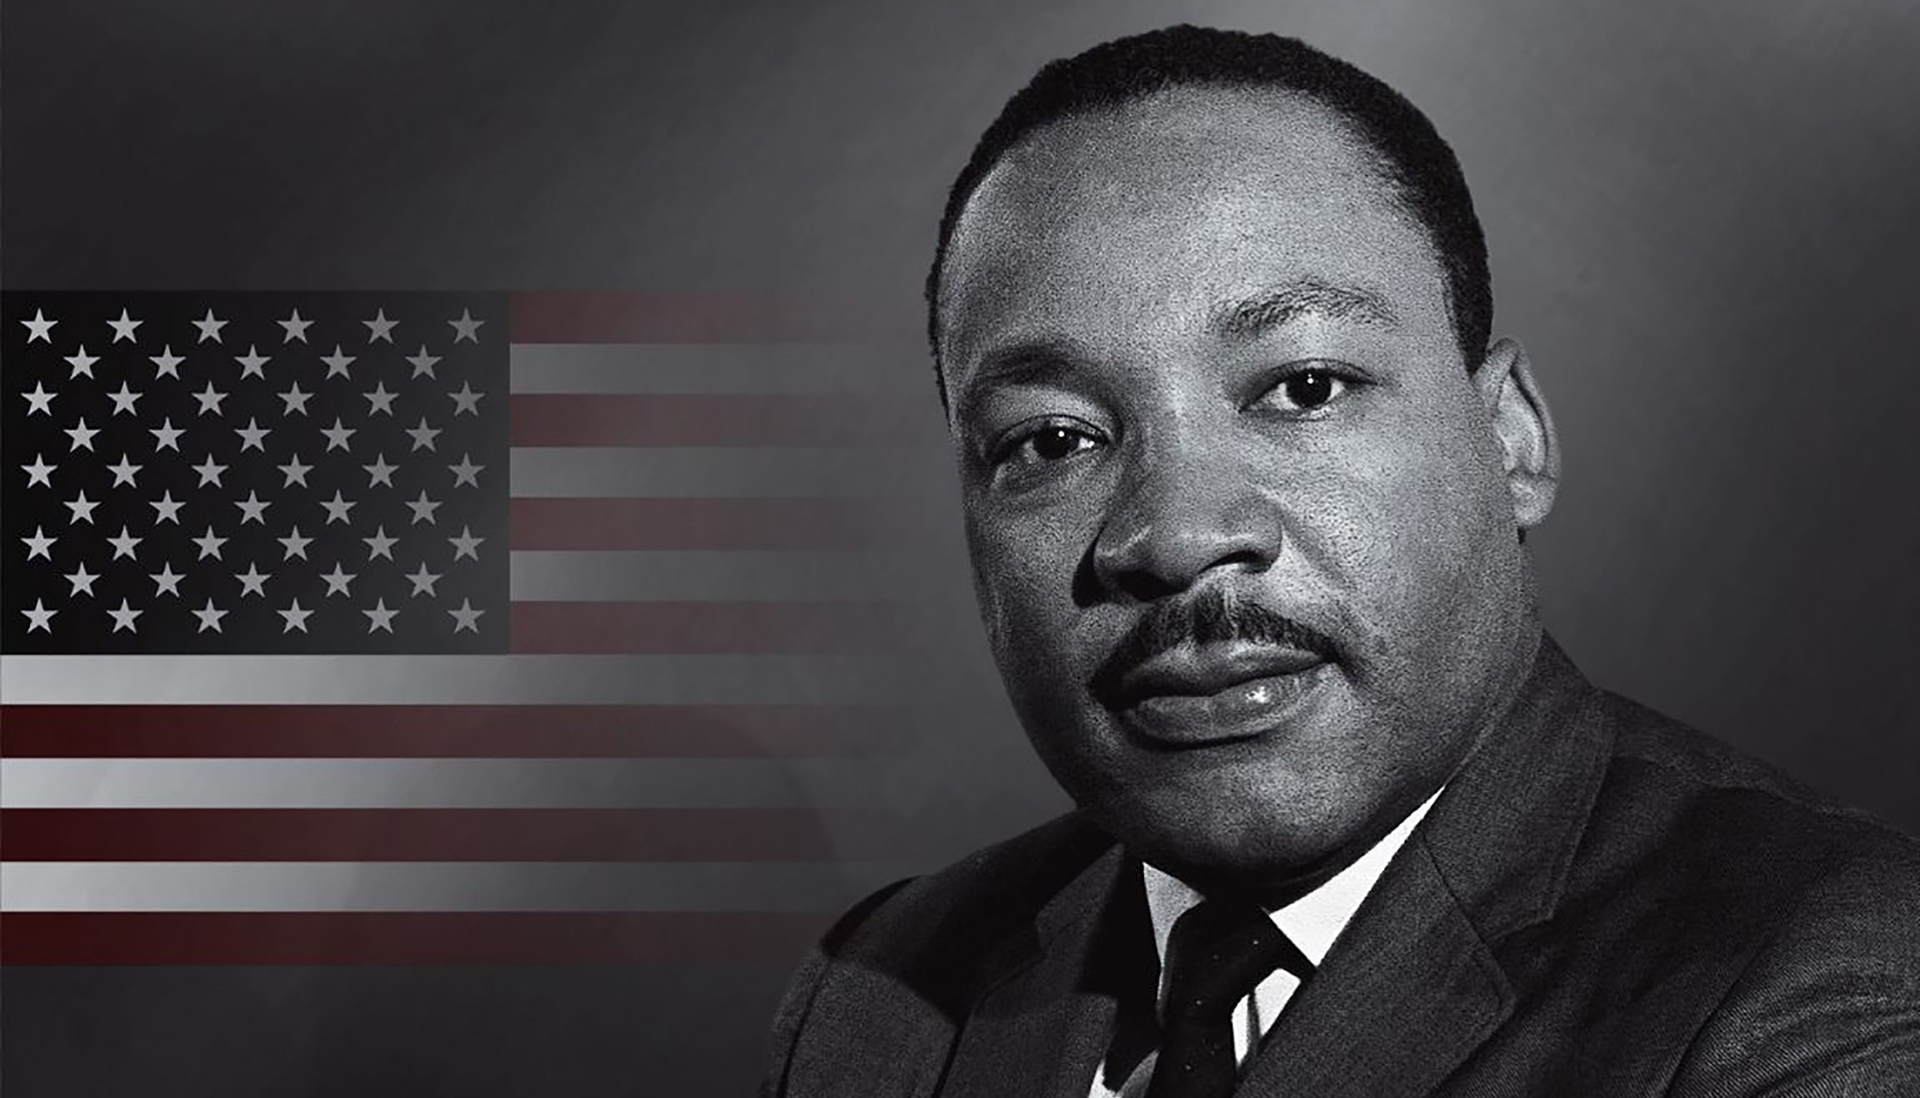 MLK Martin Luther King